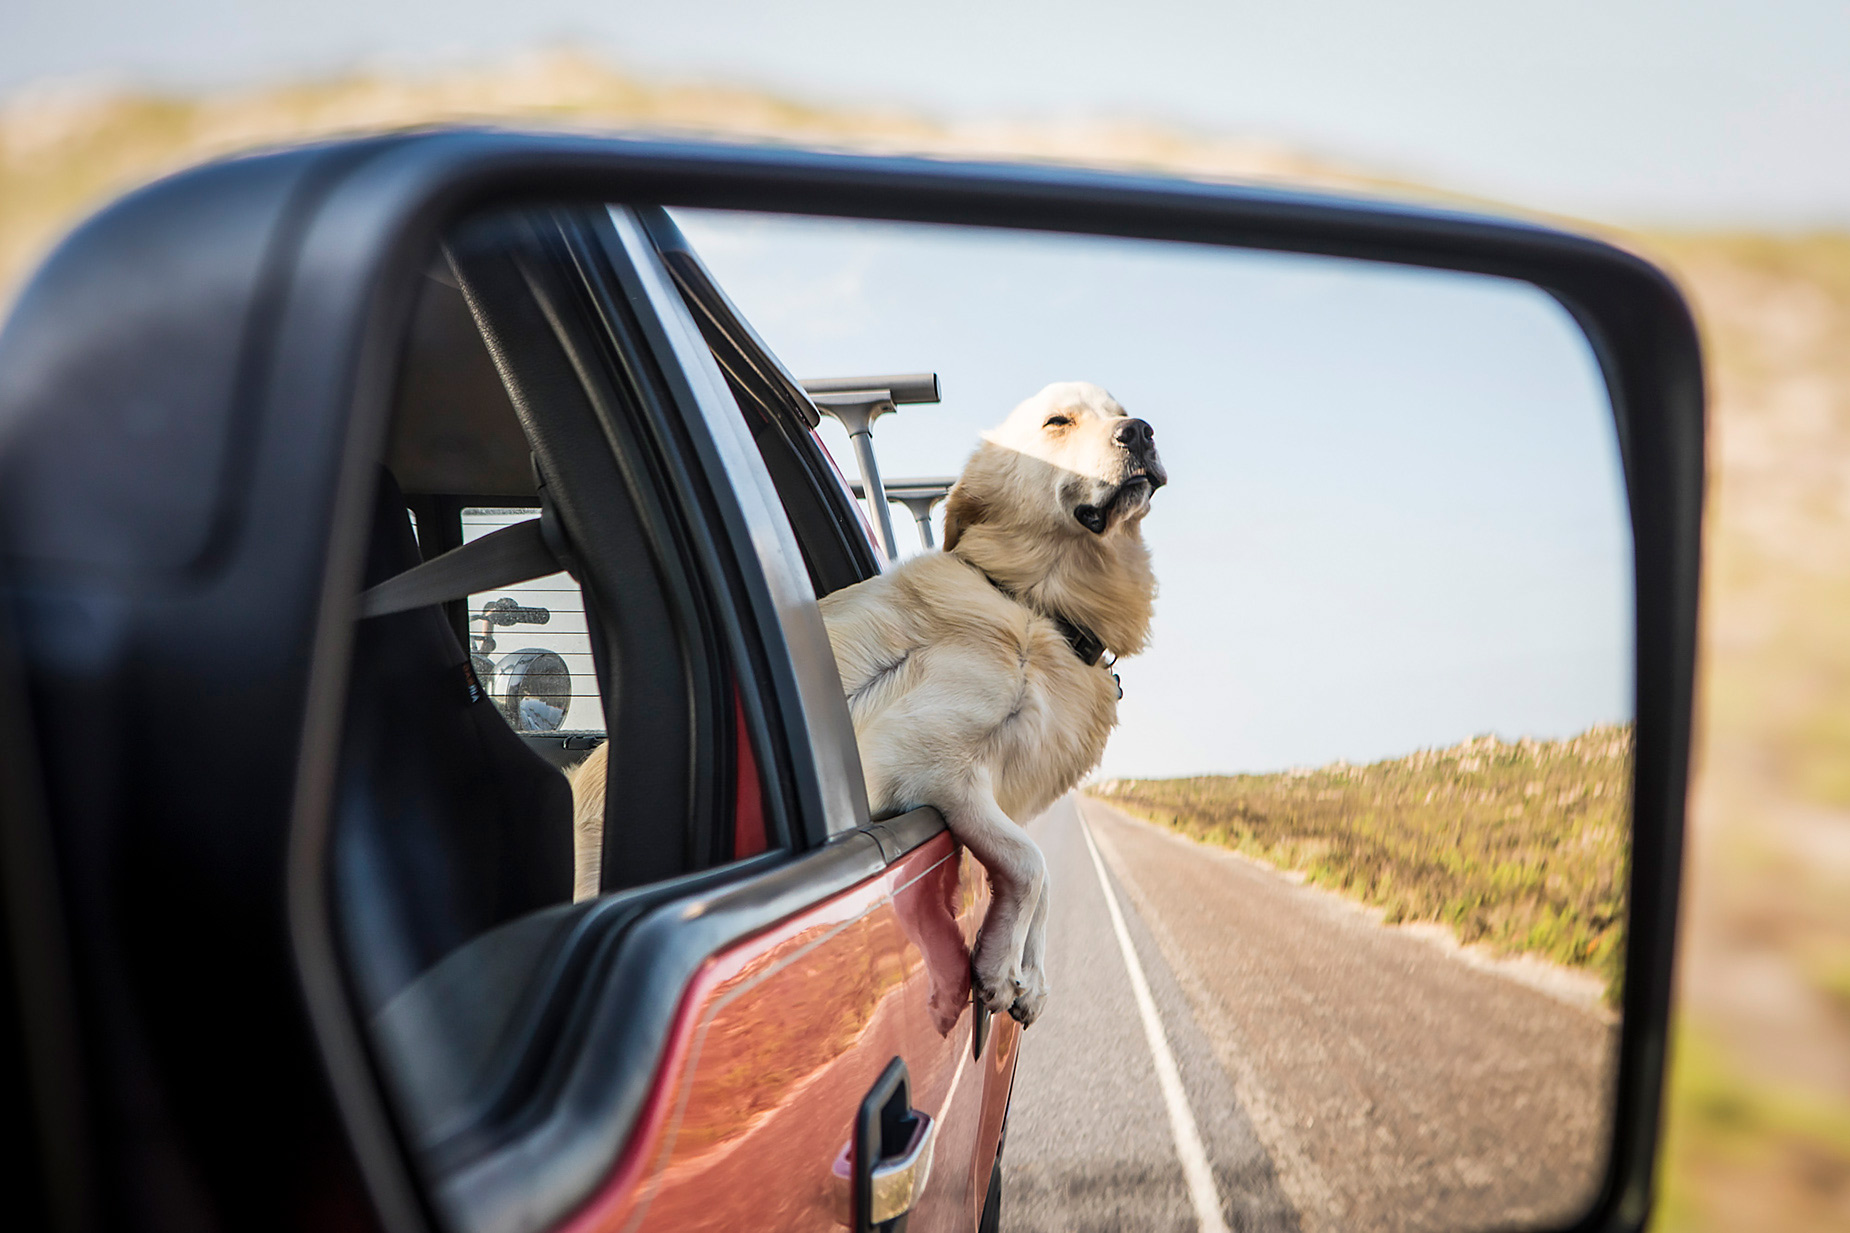 Dog hanging out of truck window on highway